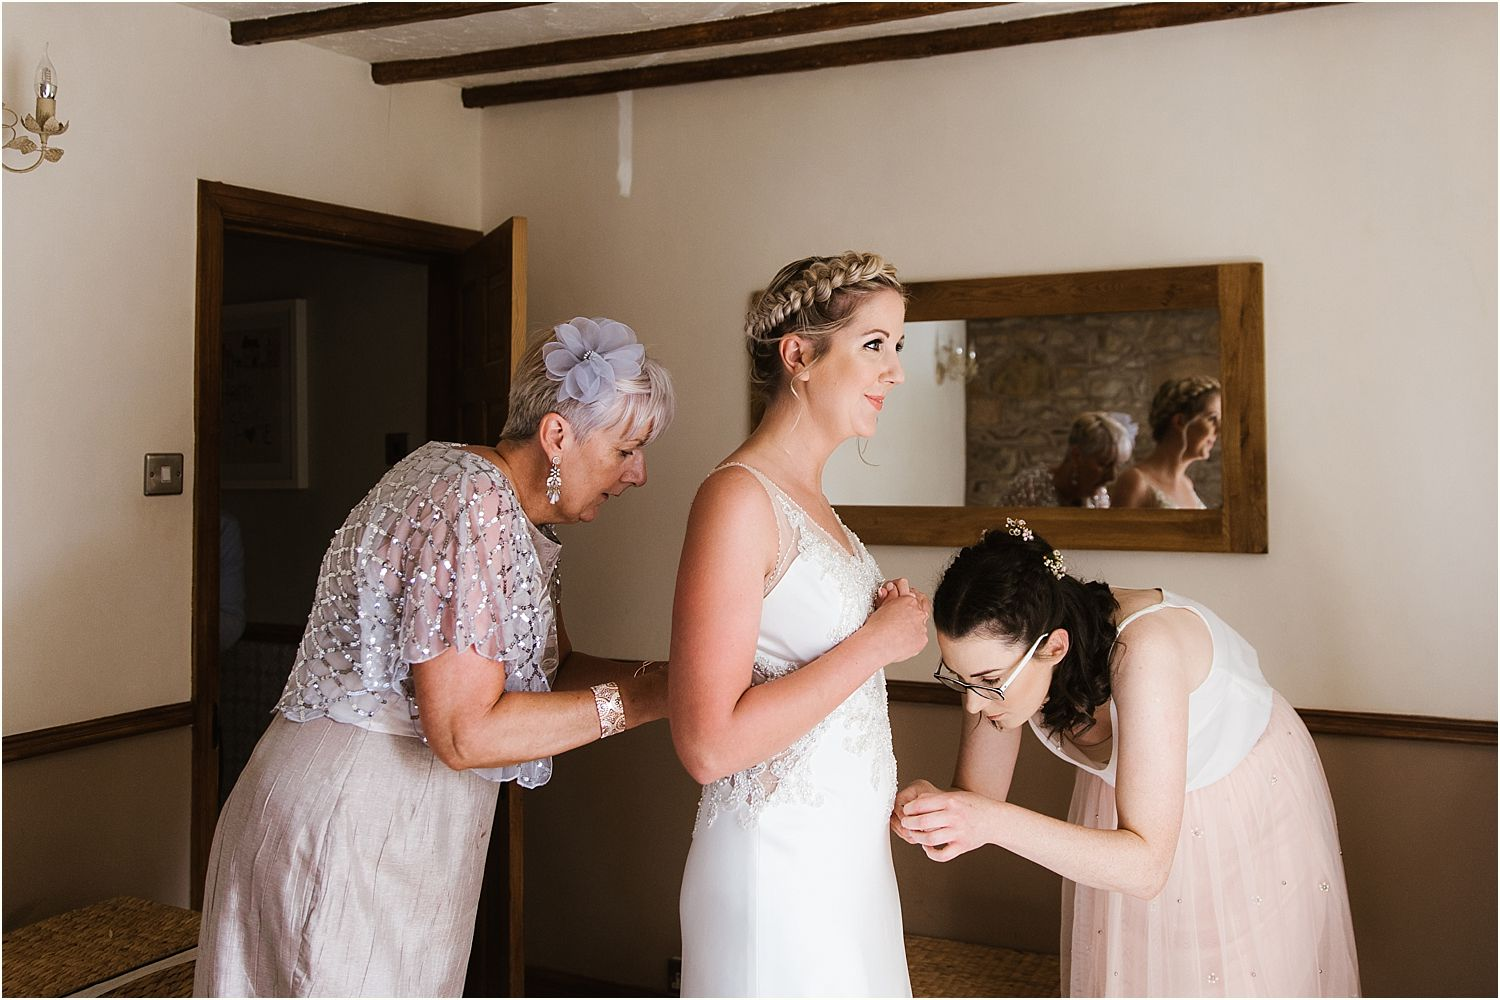 Brides mother and bridesmaid buttongin up dress and attending to bride. Wedding dress by Maggie Sottero from the Bridal Lounge in Accrington